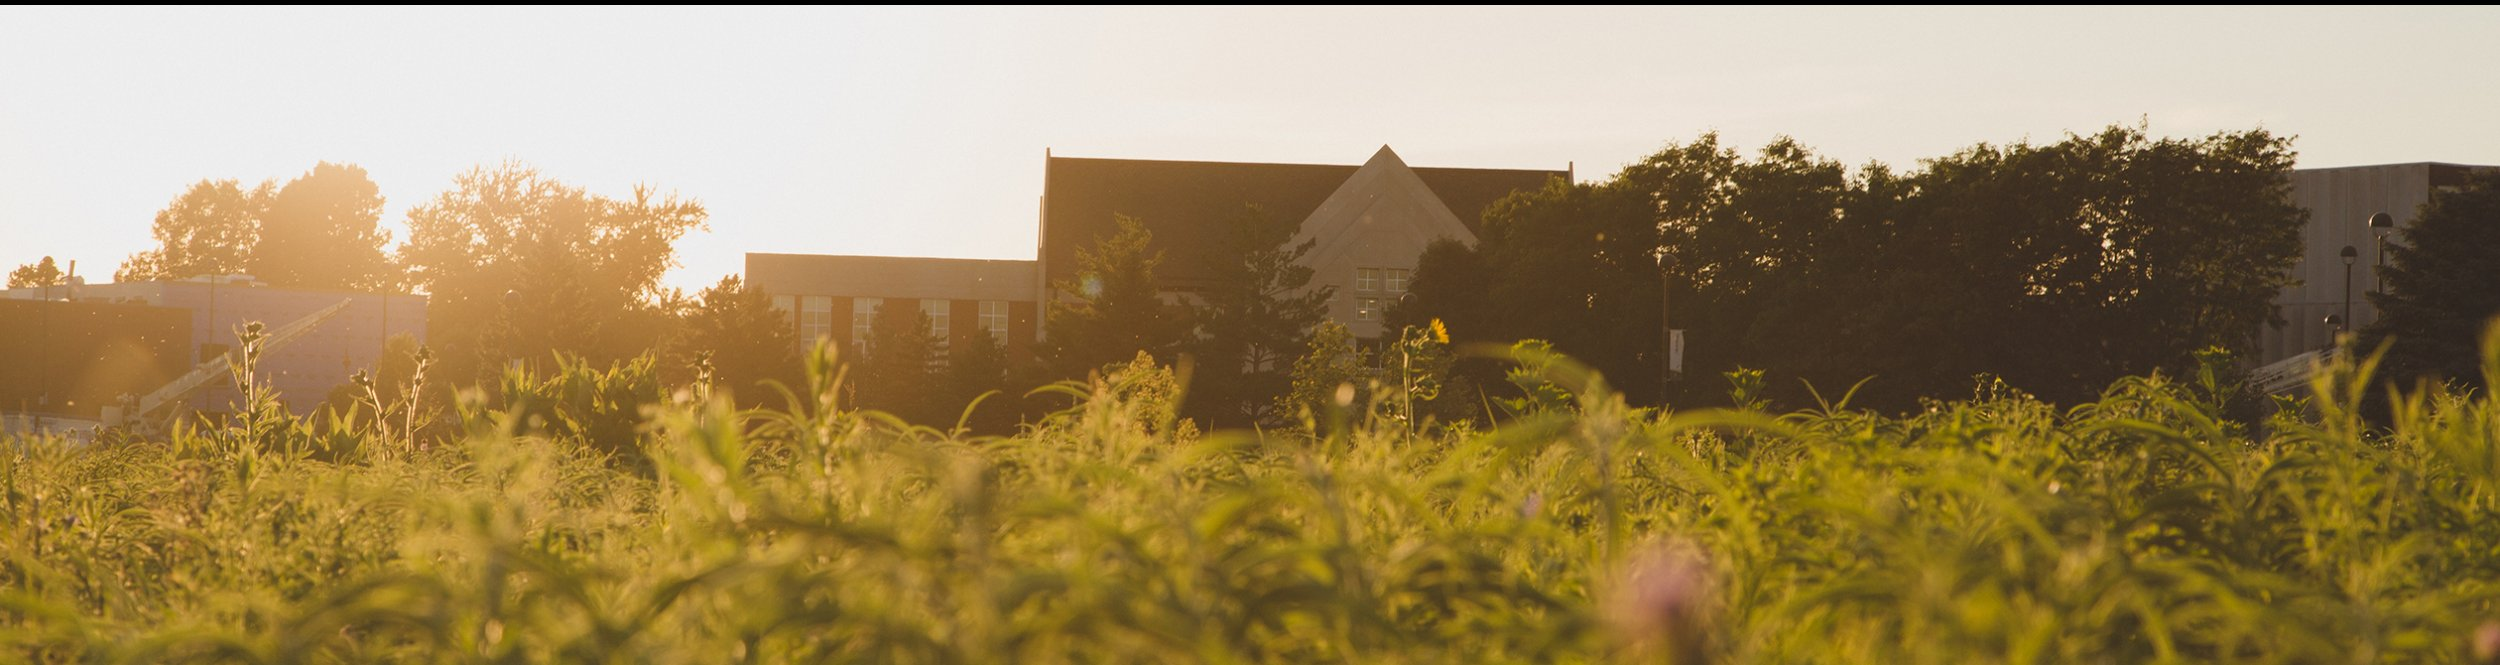 Green plants on Dordt's campus on a hazy summer day.